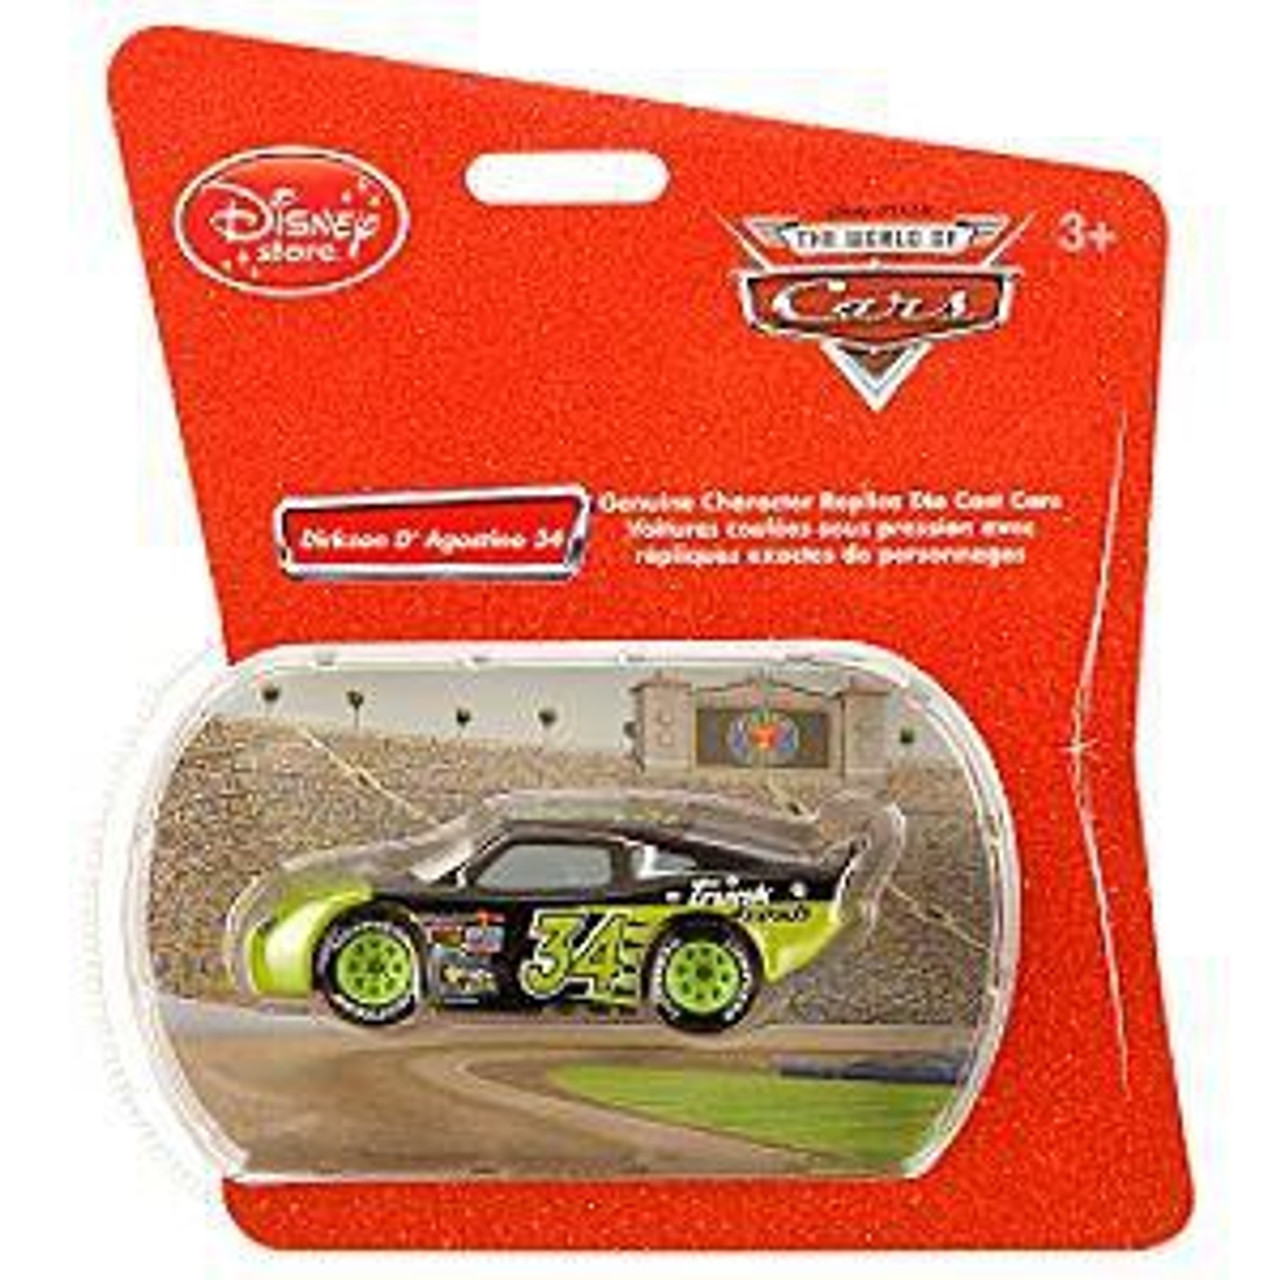 Disney Cars 1:48 Single Packs Dirkson D'Agostino No. 34 Exclusive Diecast Car [Trunk Fresh]